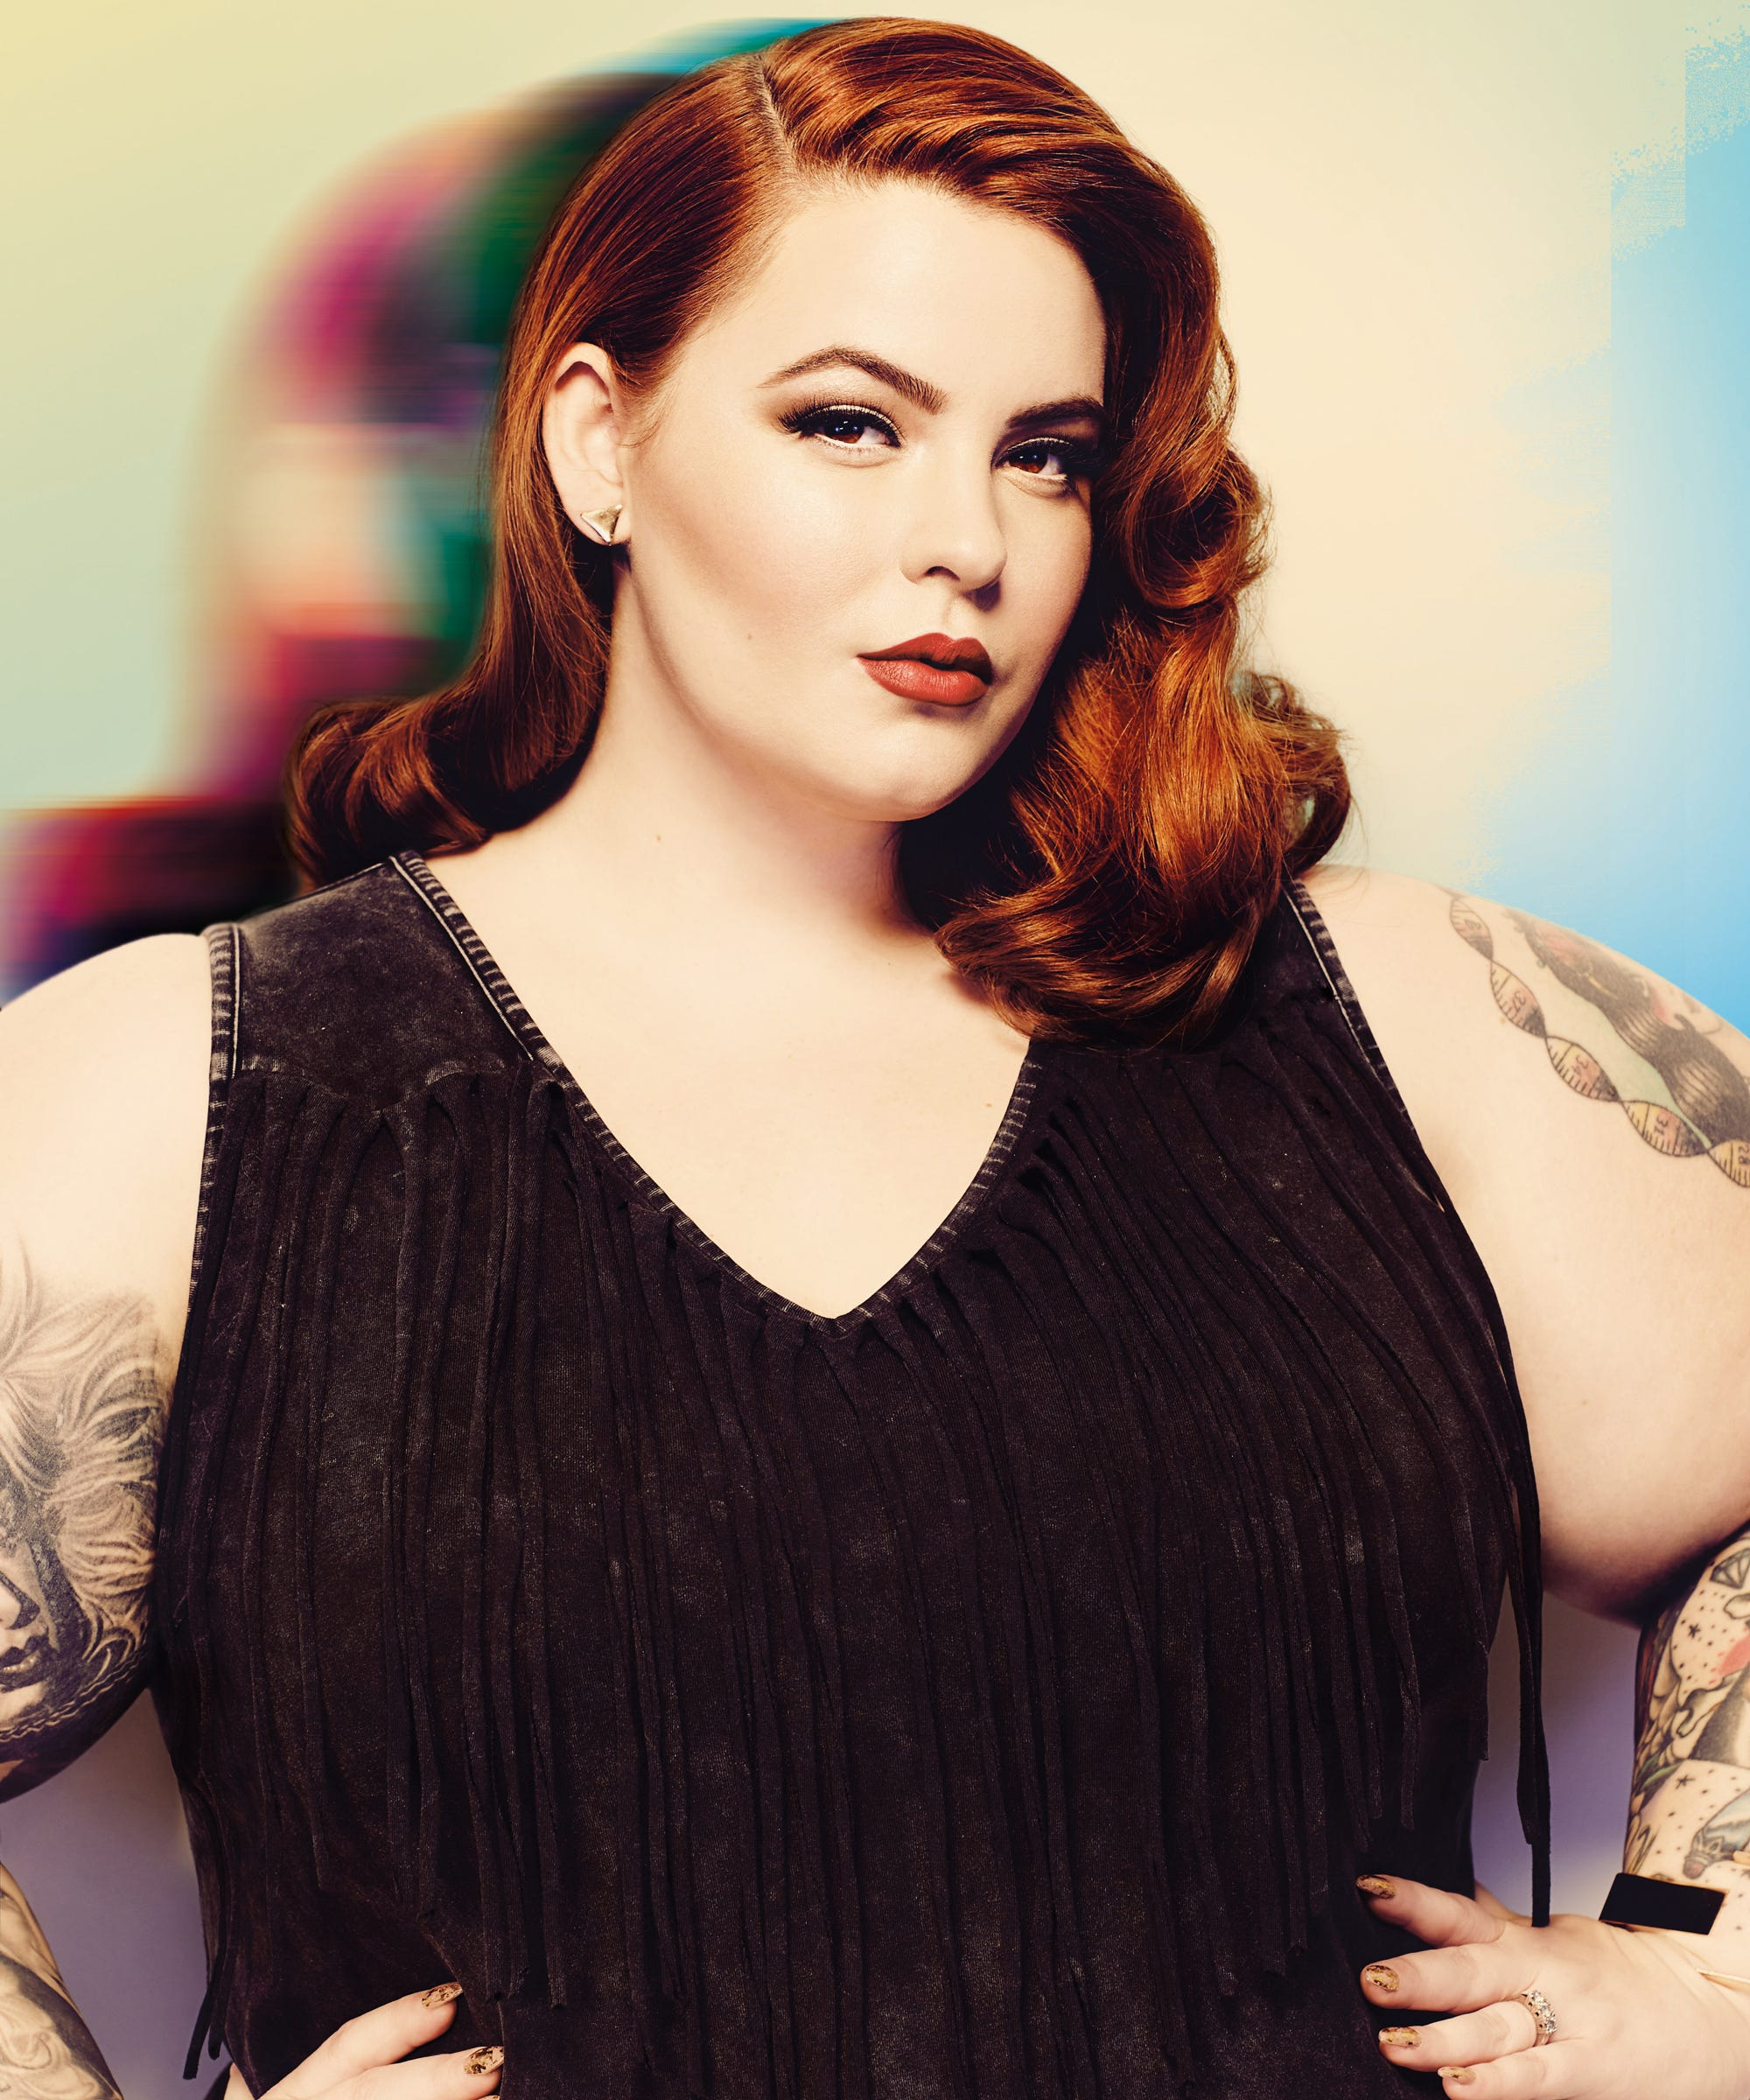 5a951243506 Here s Your First Look At The Tess Holliday x Penningtons Collection